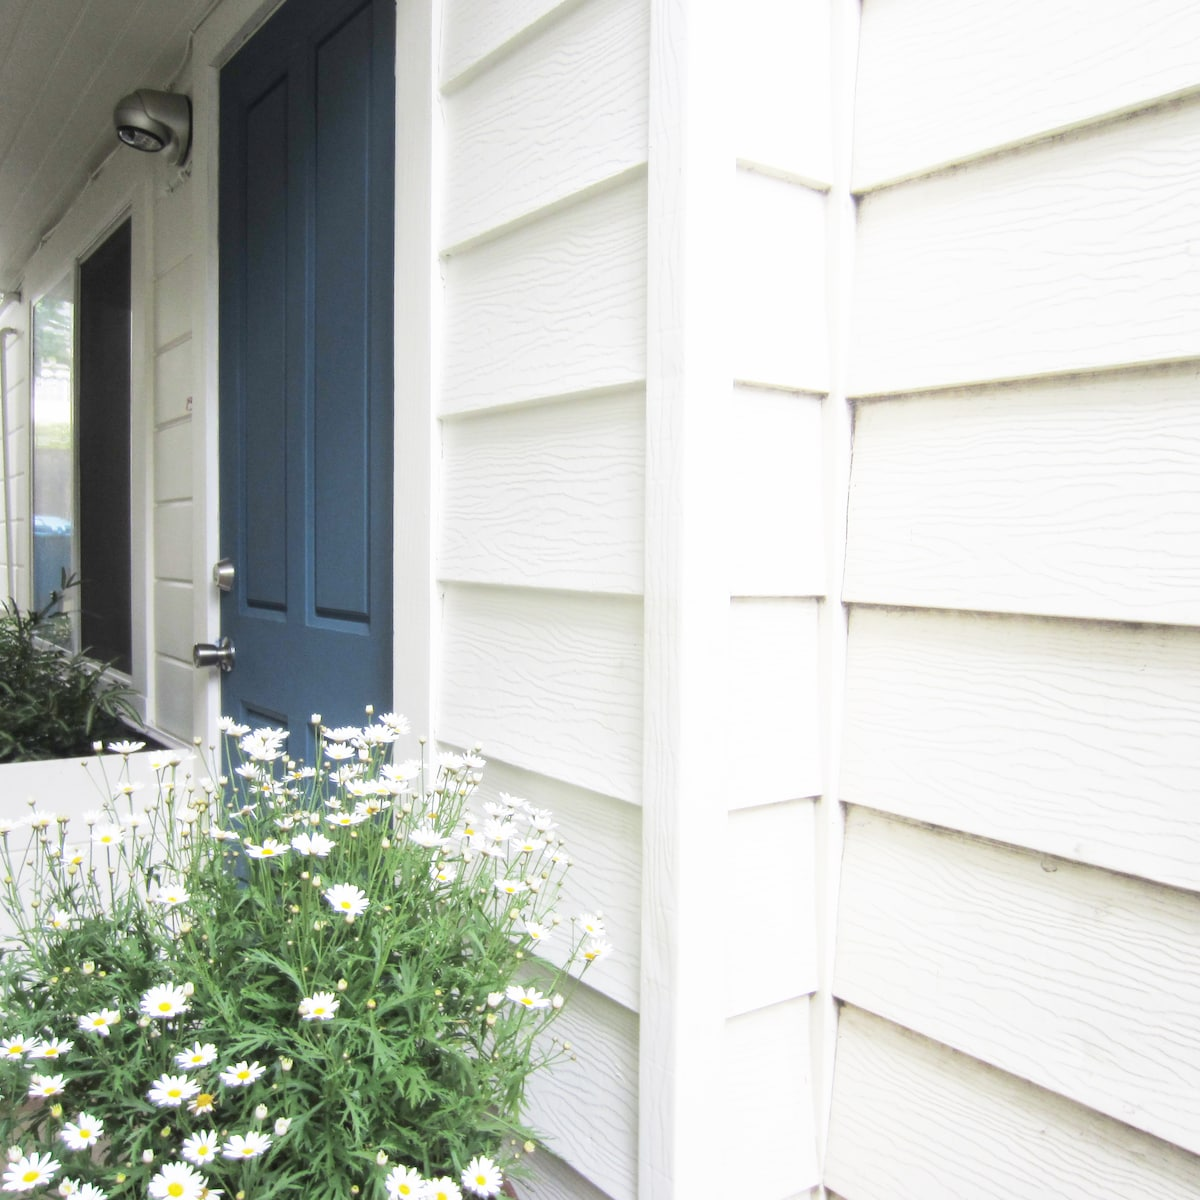 Private entry to apartment located to left of house along private walkway.